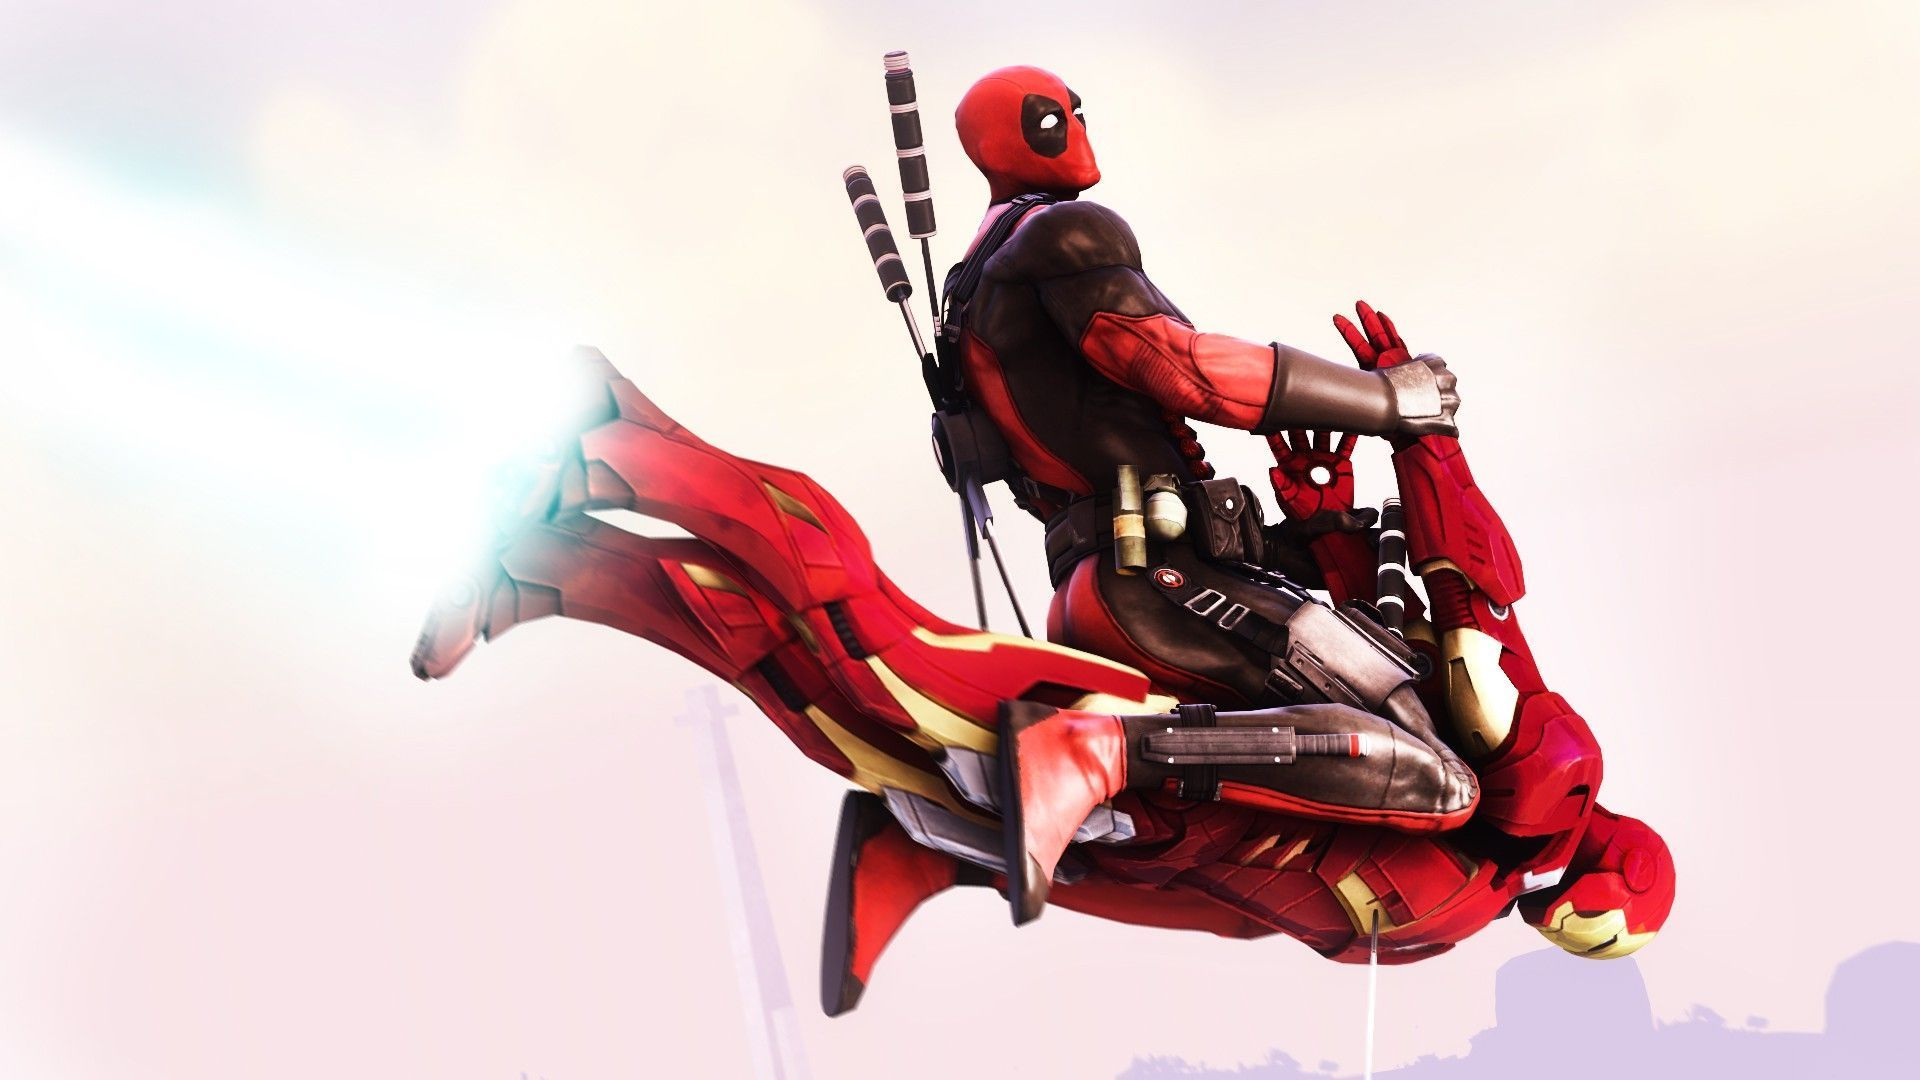 deadpool-flying-on-iron-man-funny-hd-1920x1080-cf-1920%C3%971080-wallpaper-wp3604709